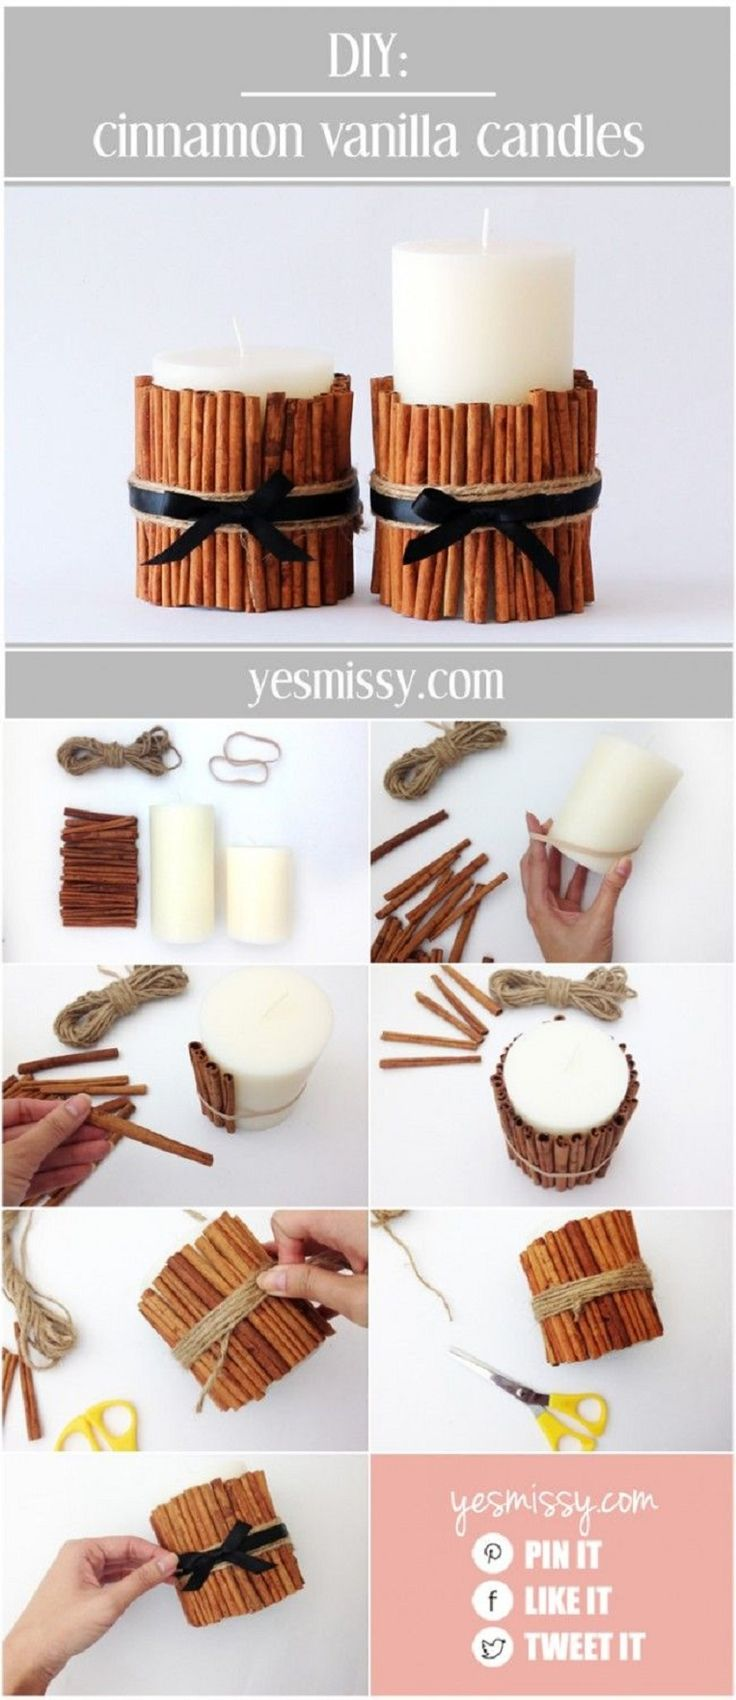 DIY Cinnamon Vanilla Candles - 15 Best DIY Ideas to Winterize Your Home for Christmas | GleamItUp